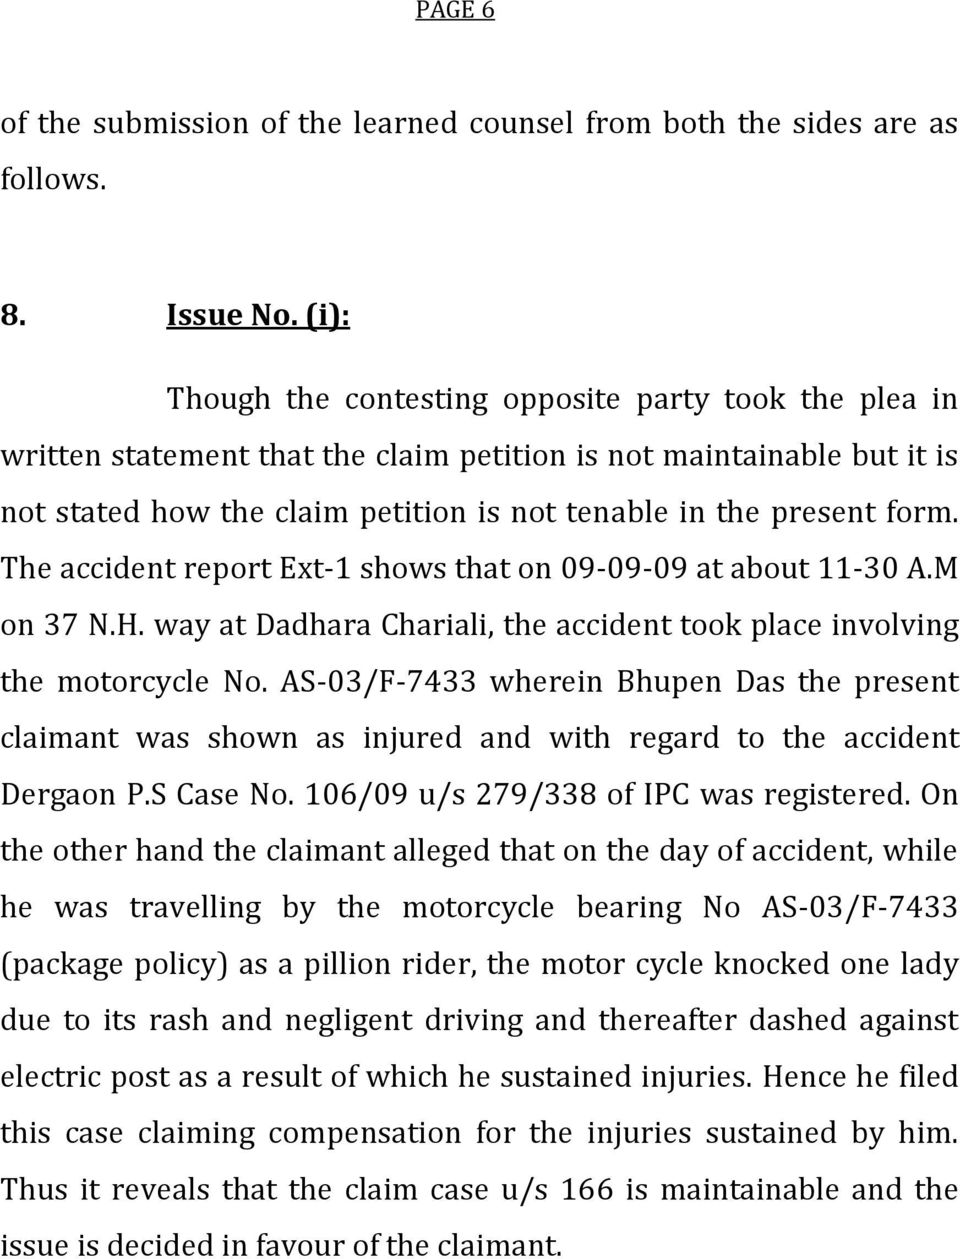 The accident report Ext-1 shows that on 09-09-09 at about 11-30 A.M on 37 N.H. way at Dadhara Chariali, the accident took place involving the motorcycle No.